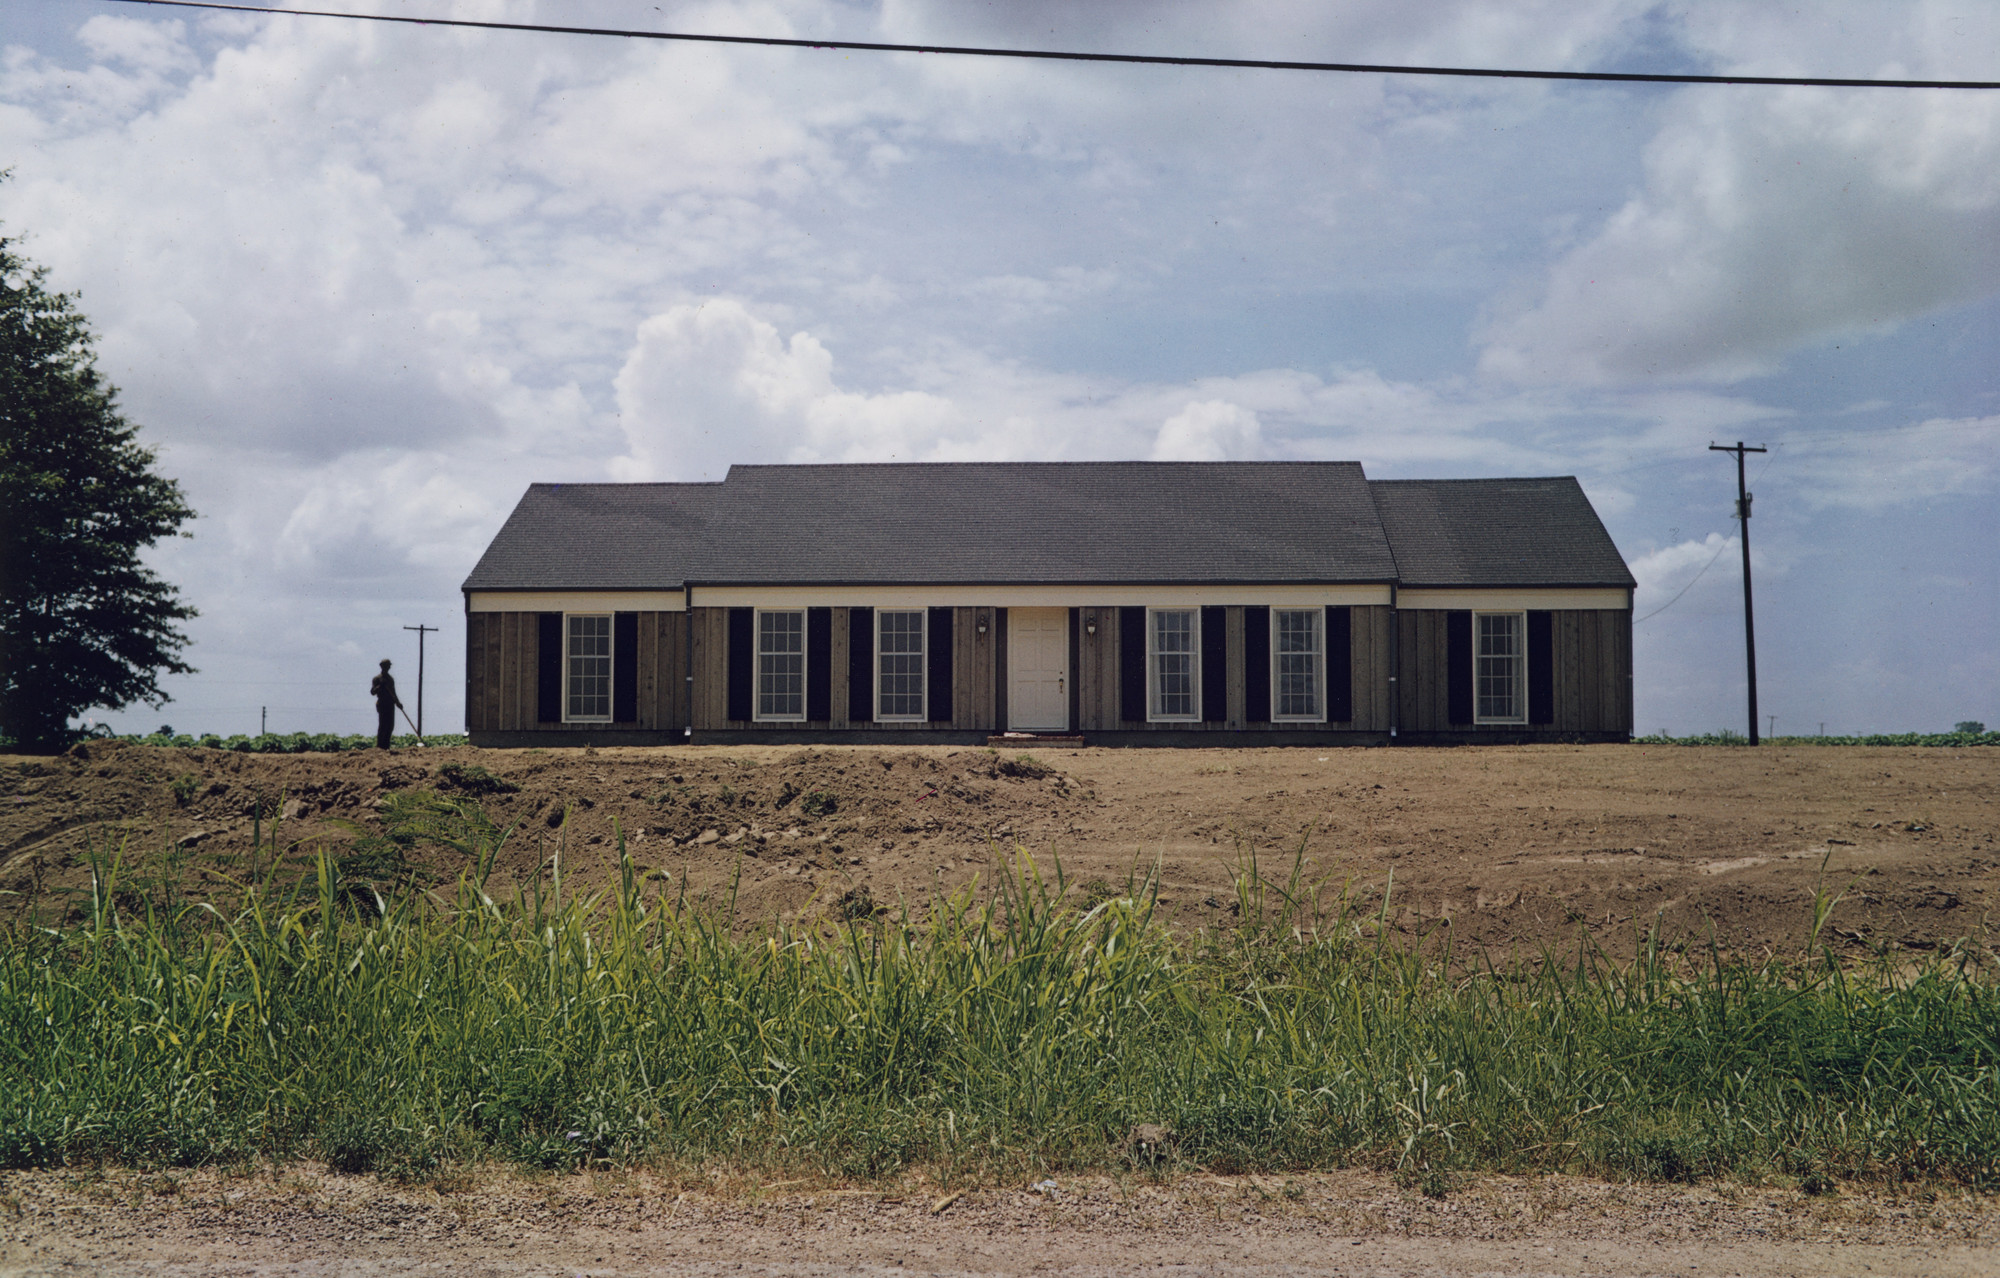 William Eggleston. Tallahatchie County, Mississippi. July, 1970